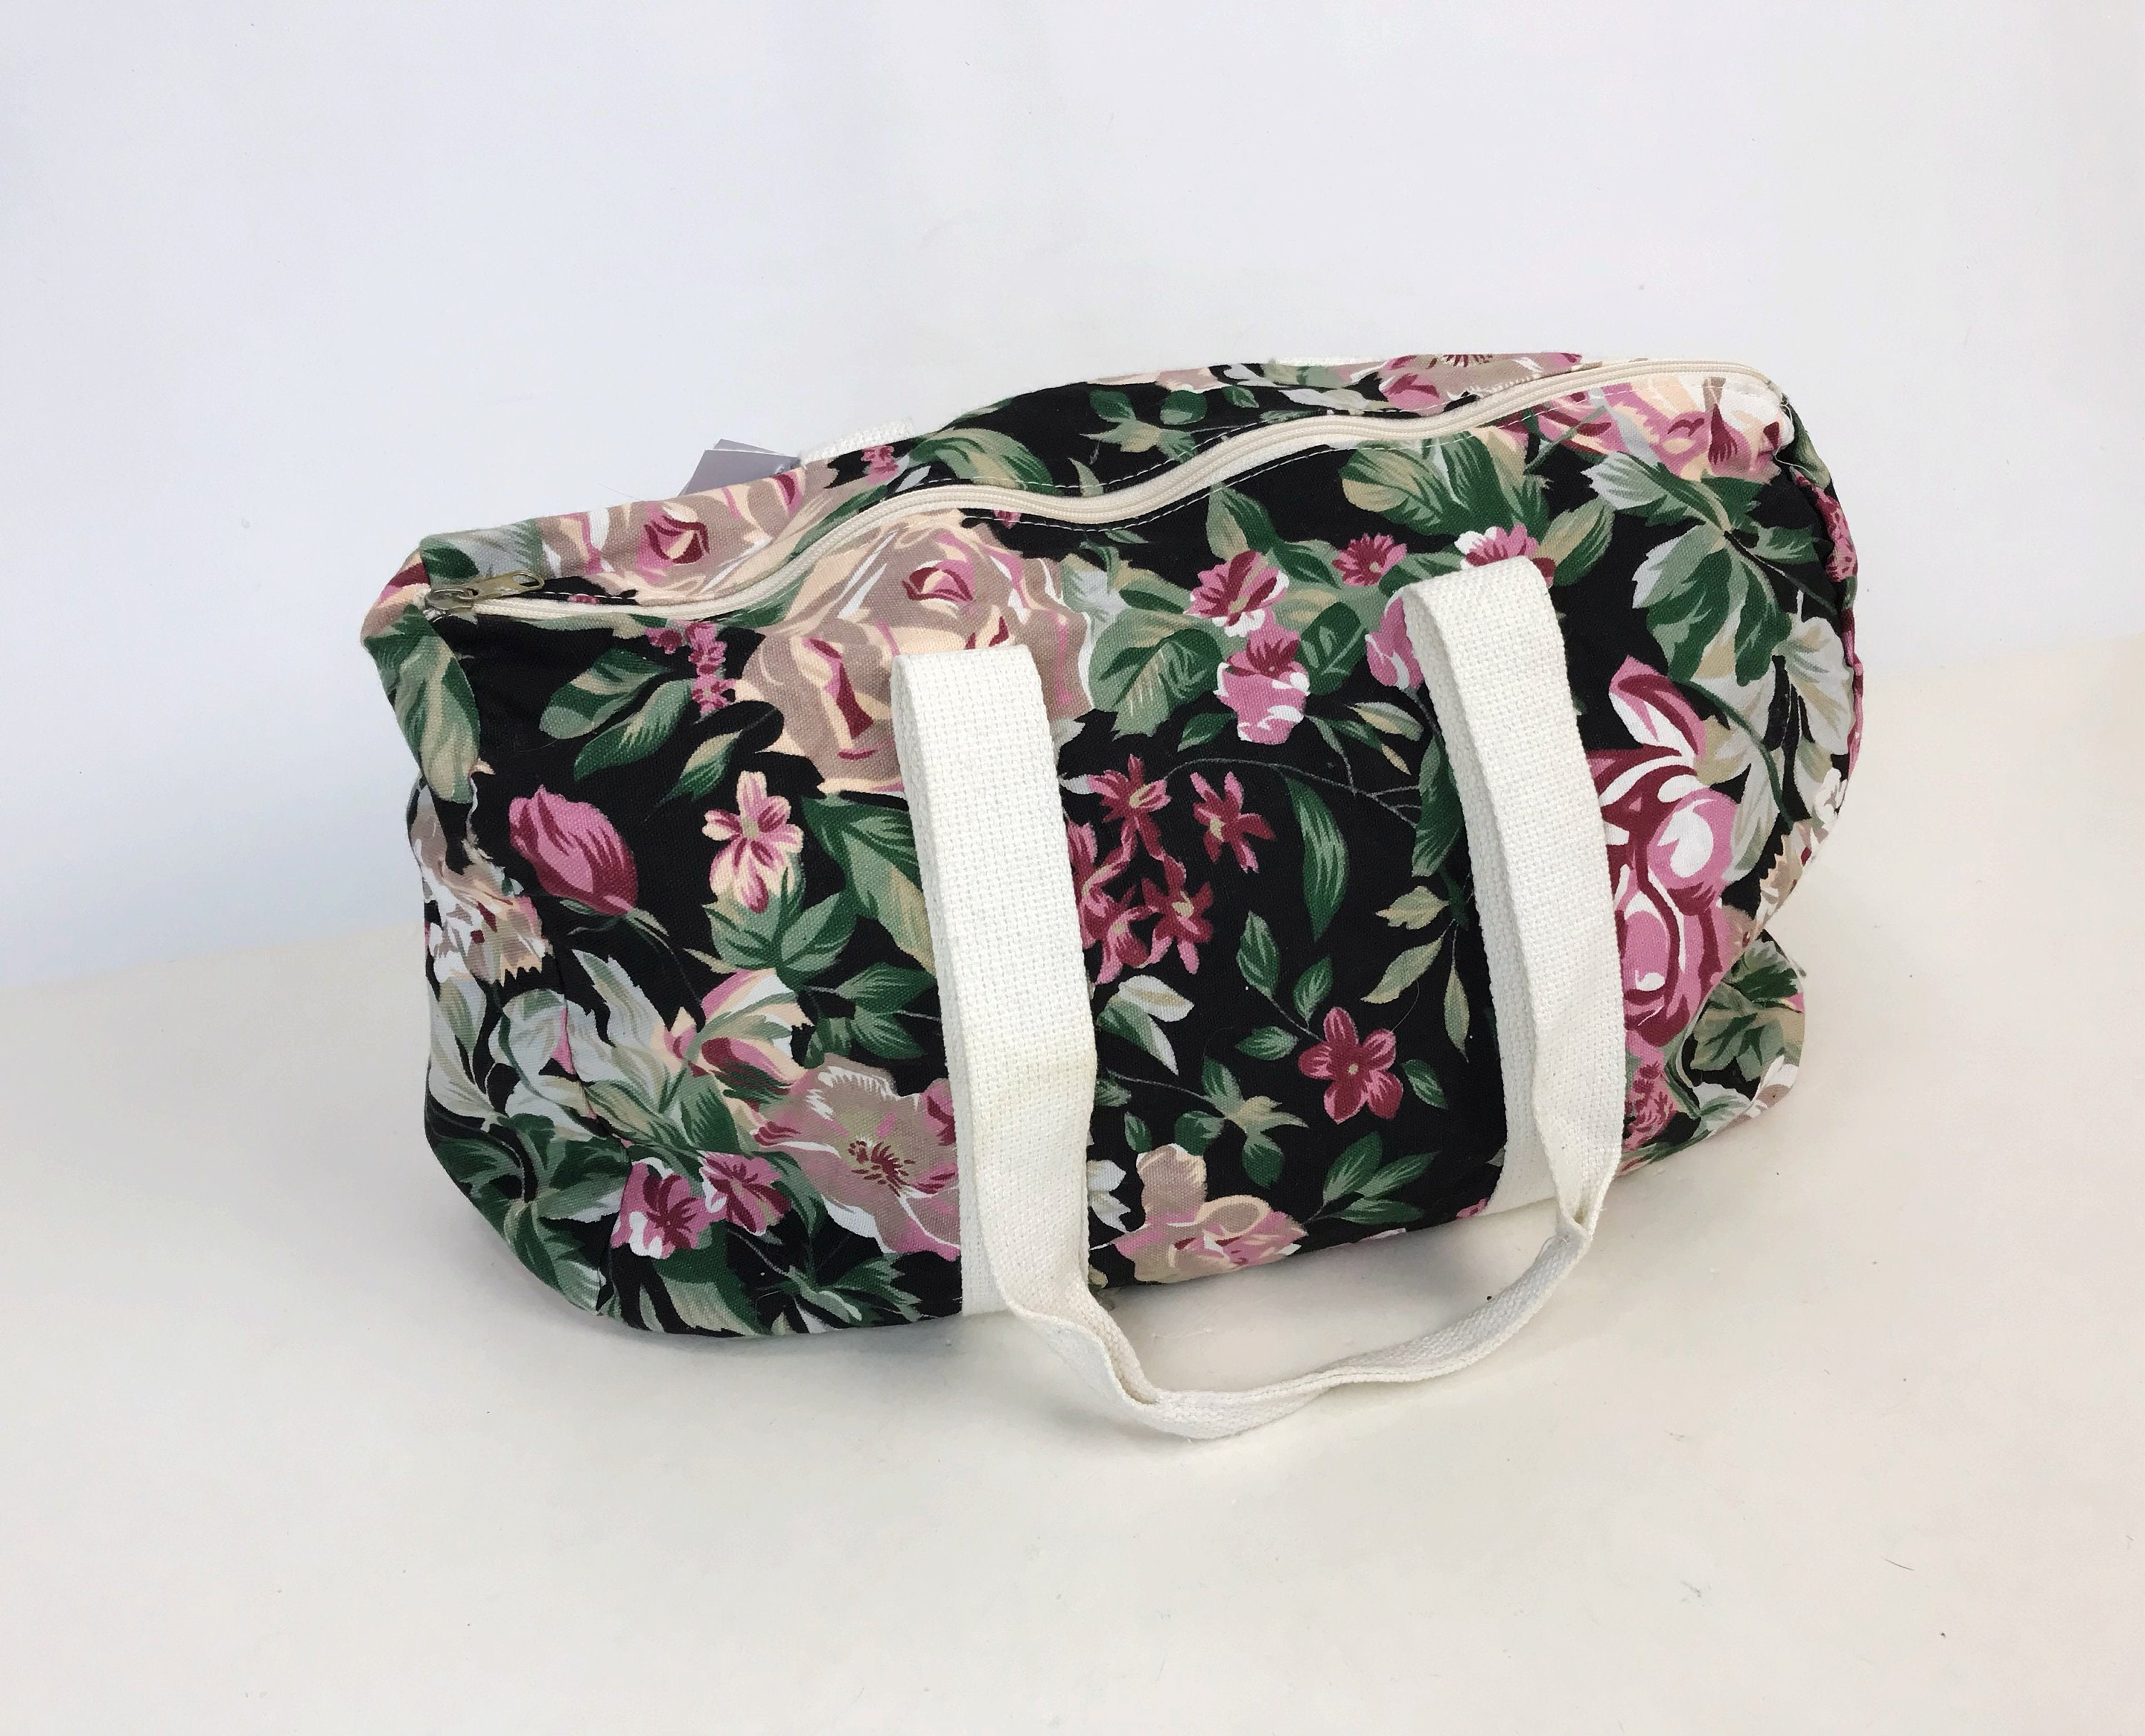 90 s Dark Floral Pink Rose Printed Carry All Bag - Slouchy Tote Bag Soft  Cotton Denim Luggage Cute Girly 90 s Sack - Large Gym Duffel Bag 97efaf2cbde88